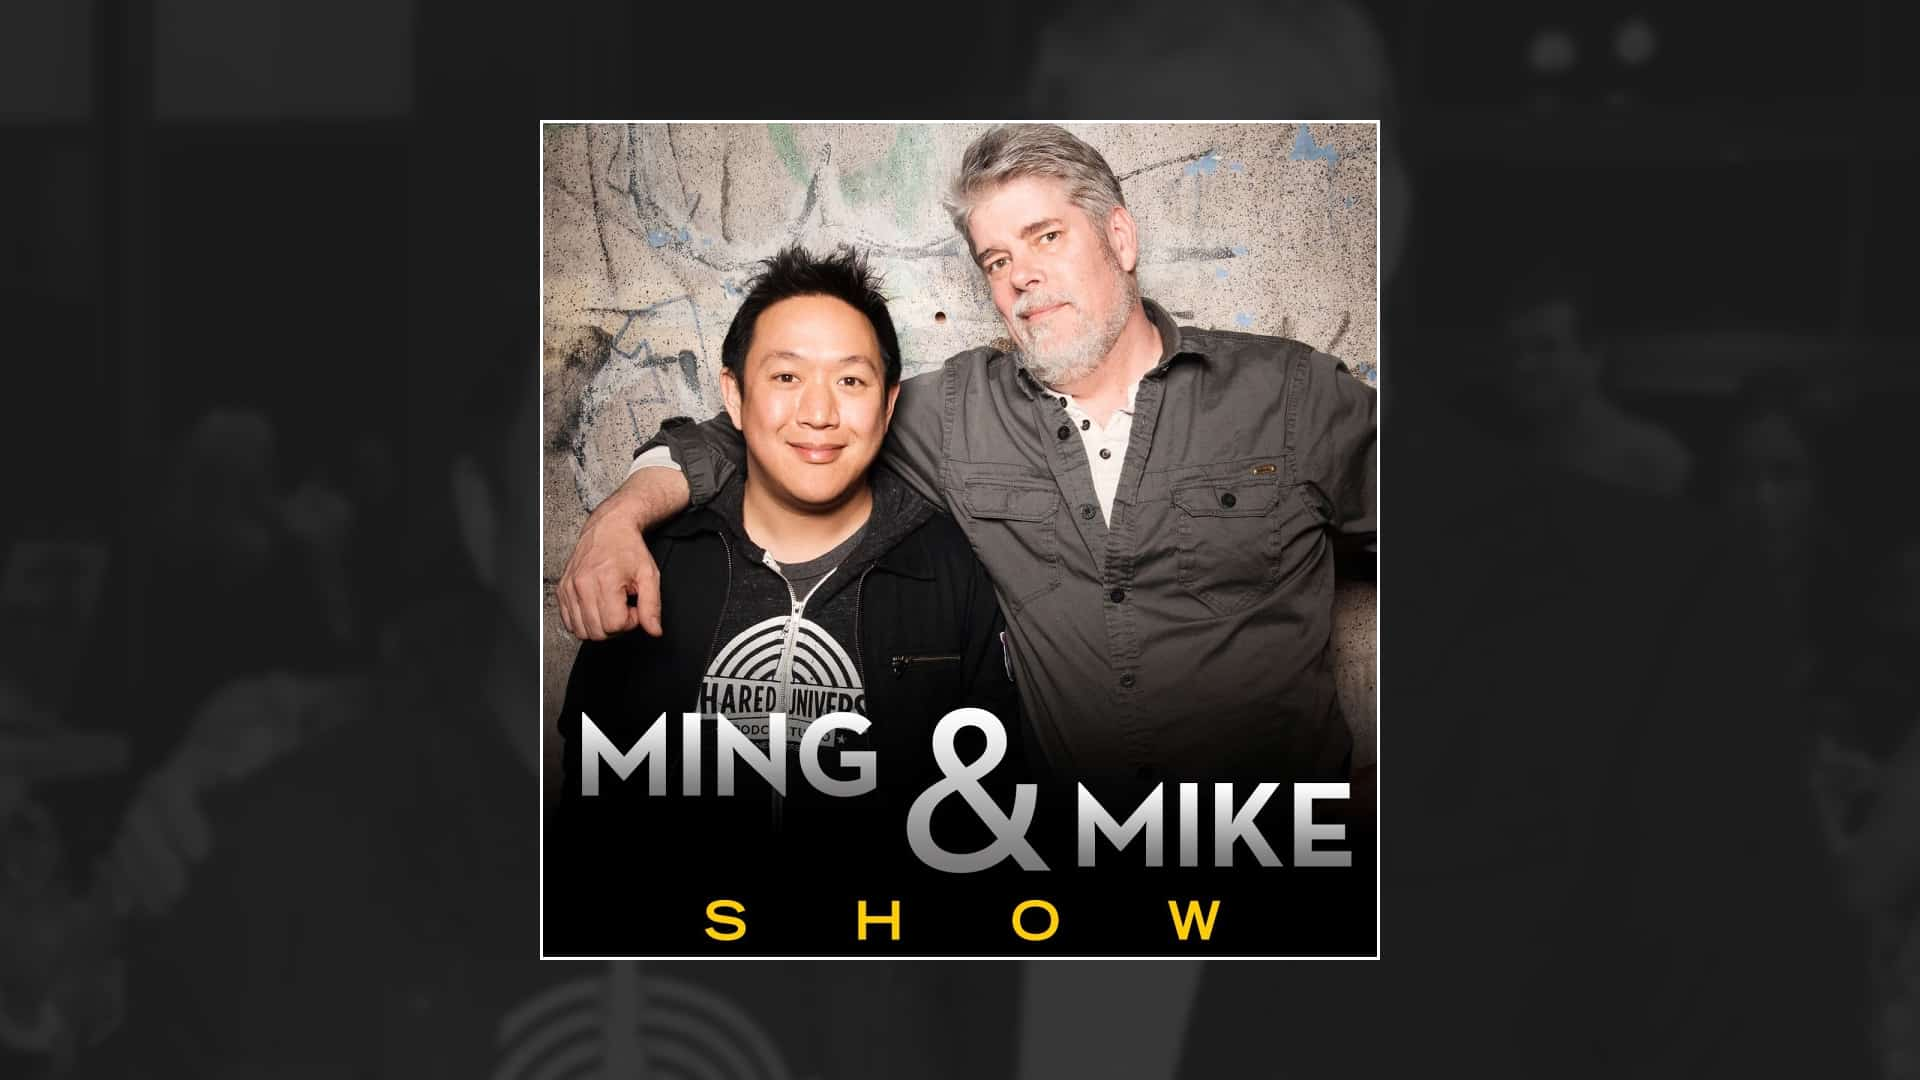 Mike and Ming Show with Mike Zapcic and Ming Chen